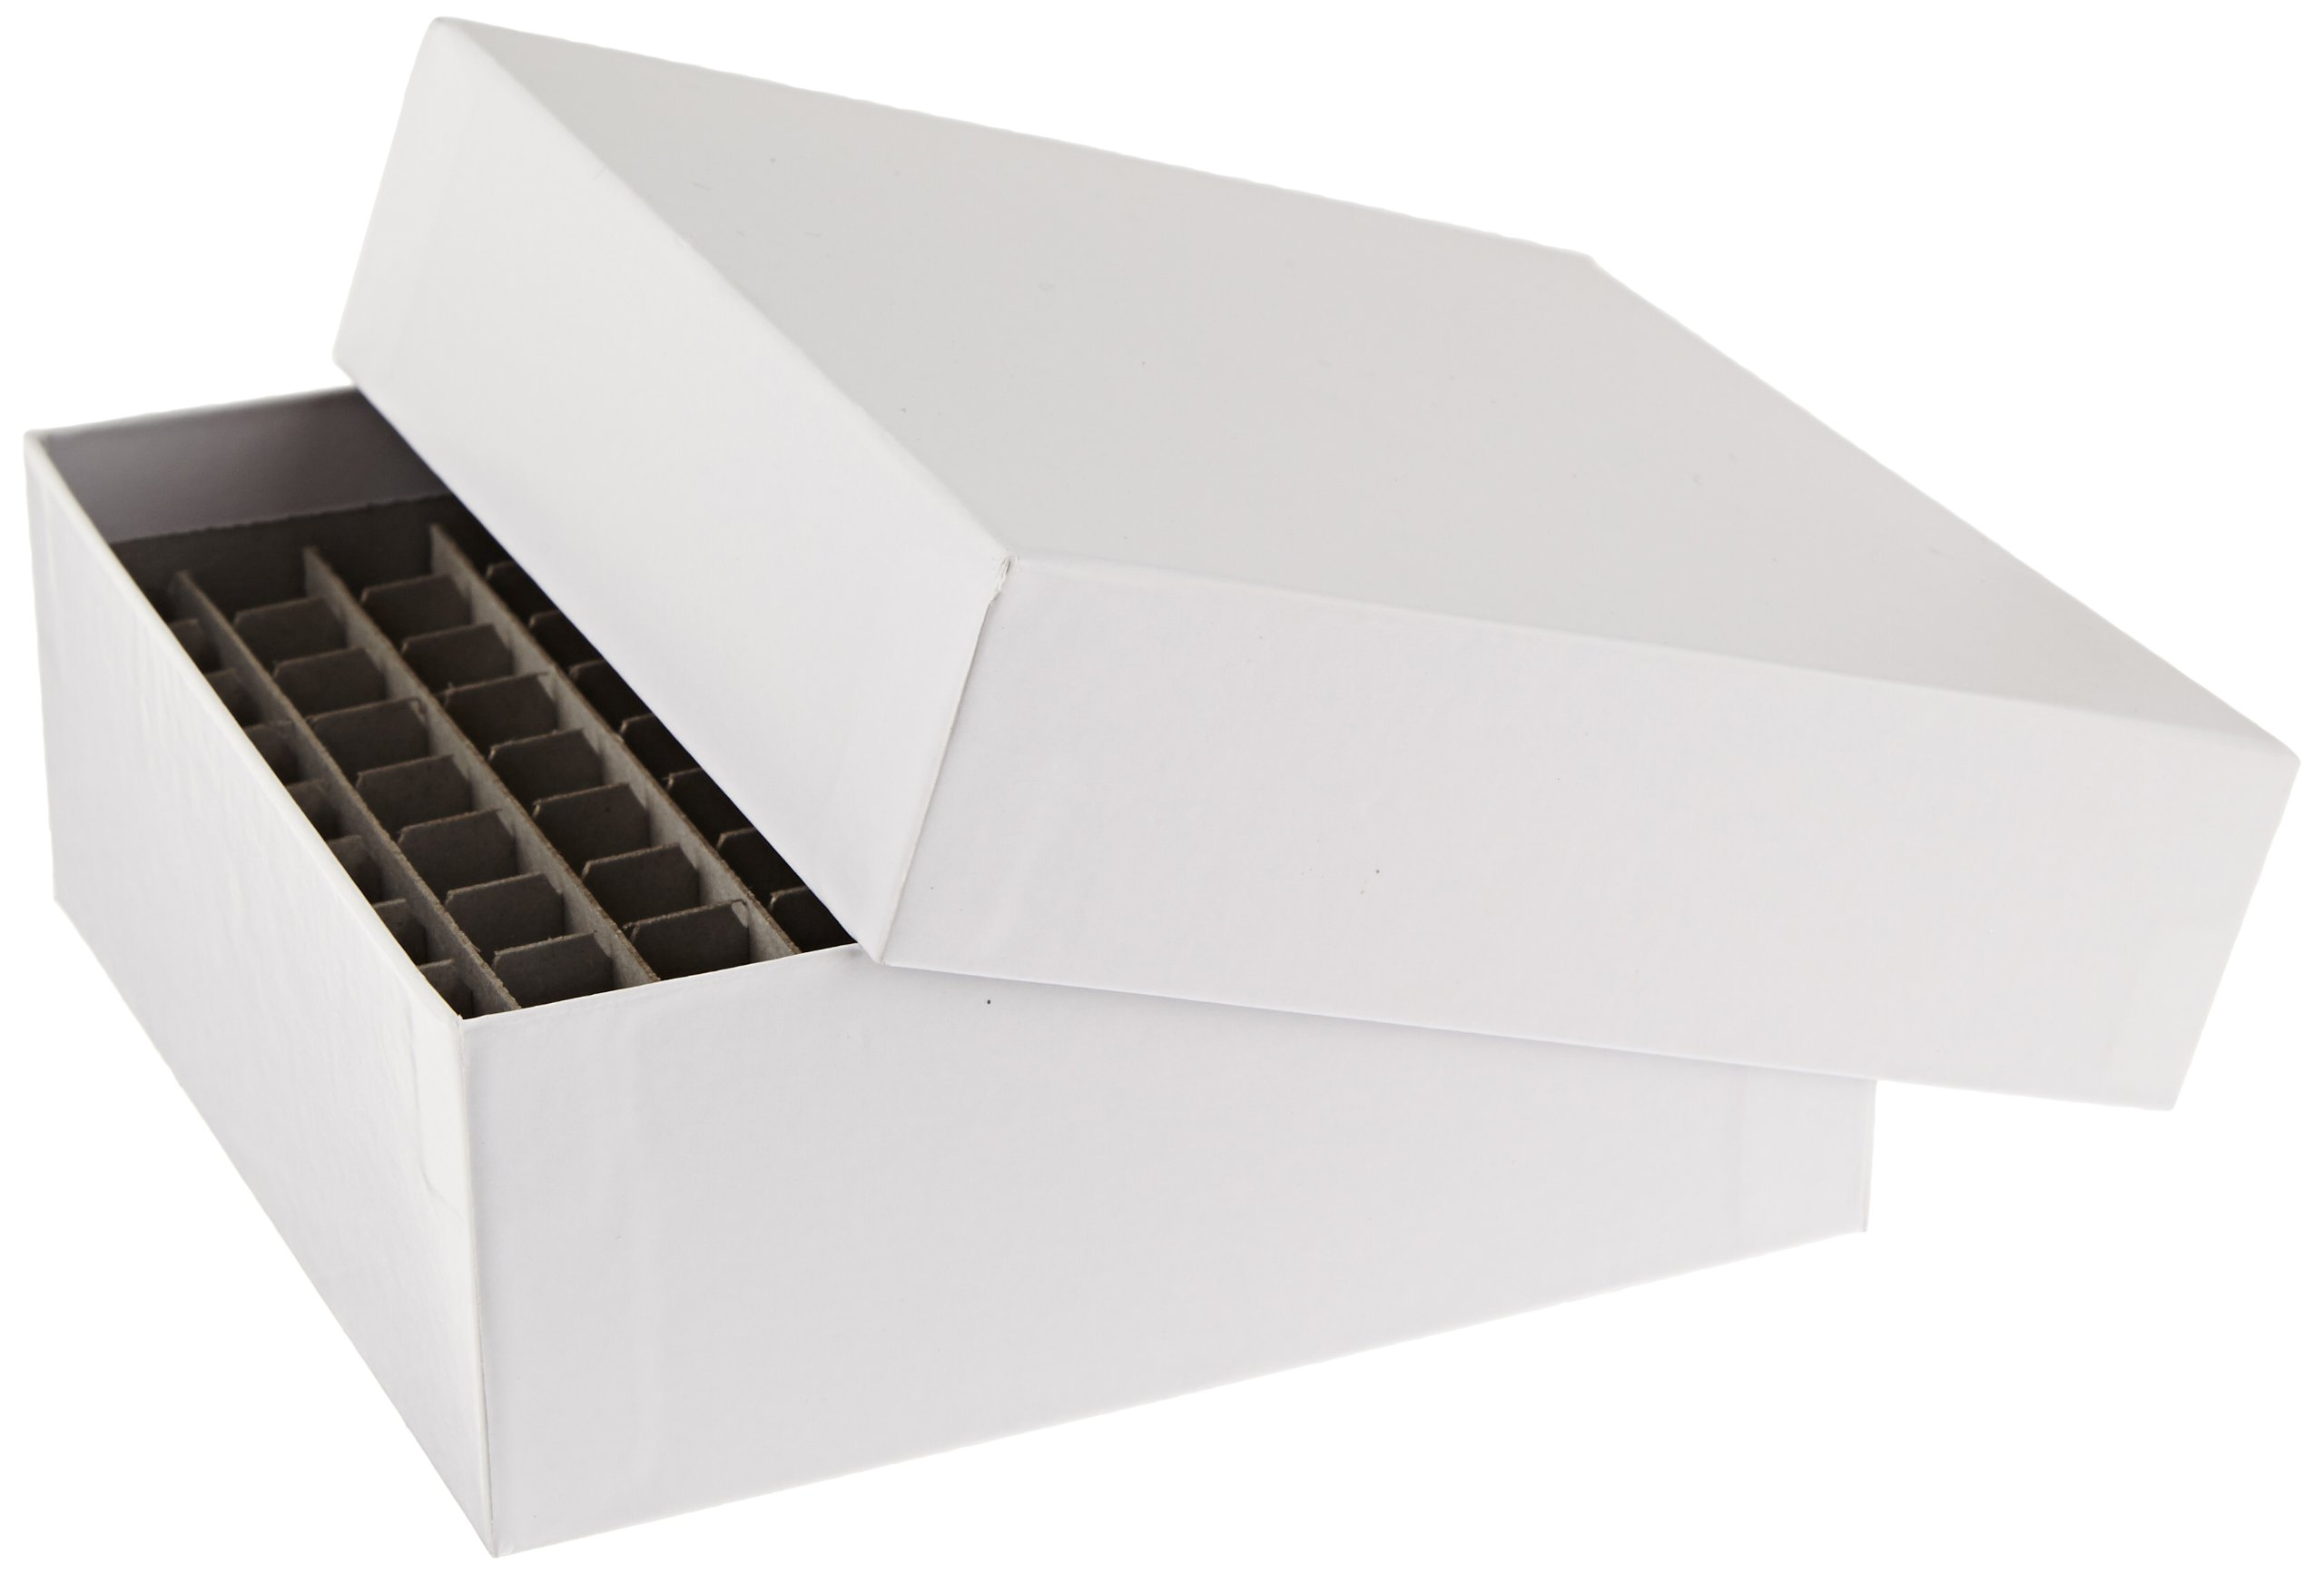 Alkali Scientific SB2CC-100 White 2'' Cardboard Freezer Box with 100-Cell Divider, 5-1/4'' Length x 5-1/4'' Width x 2'' Height (10 boxes/pk)